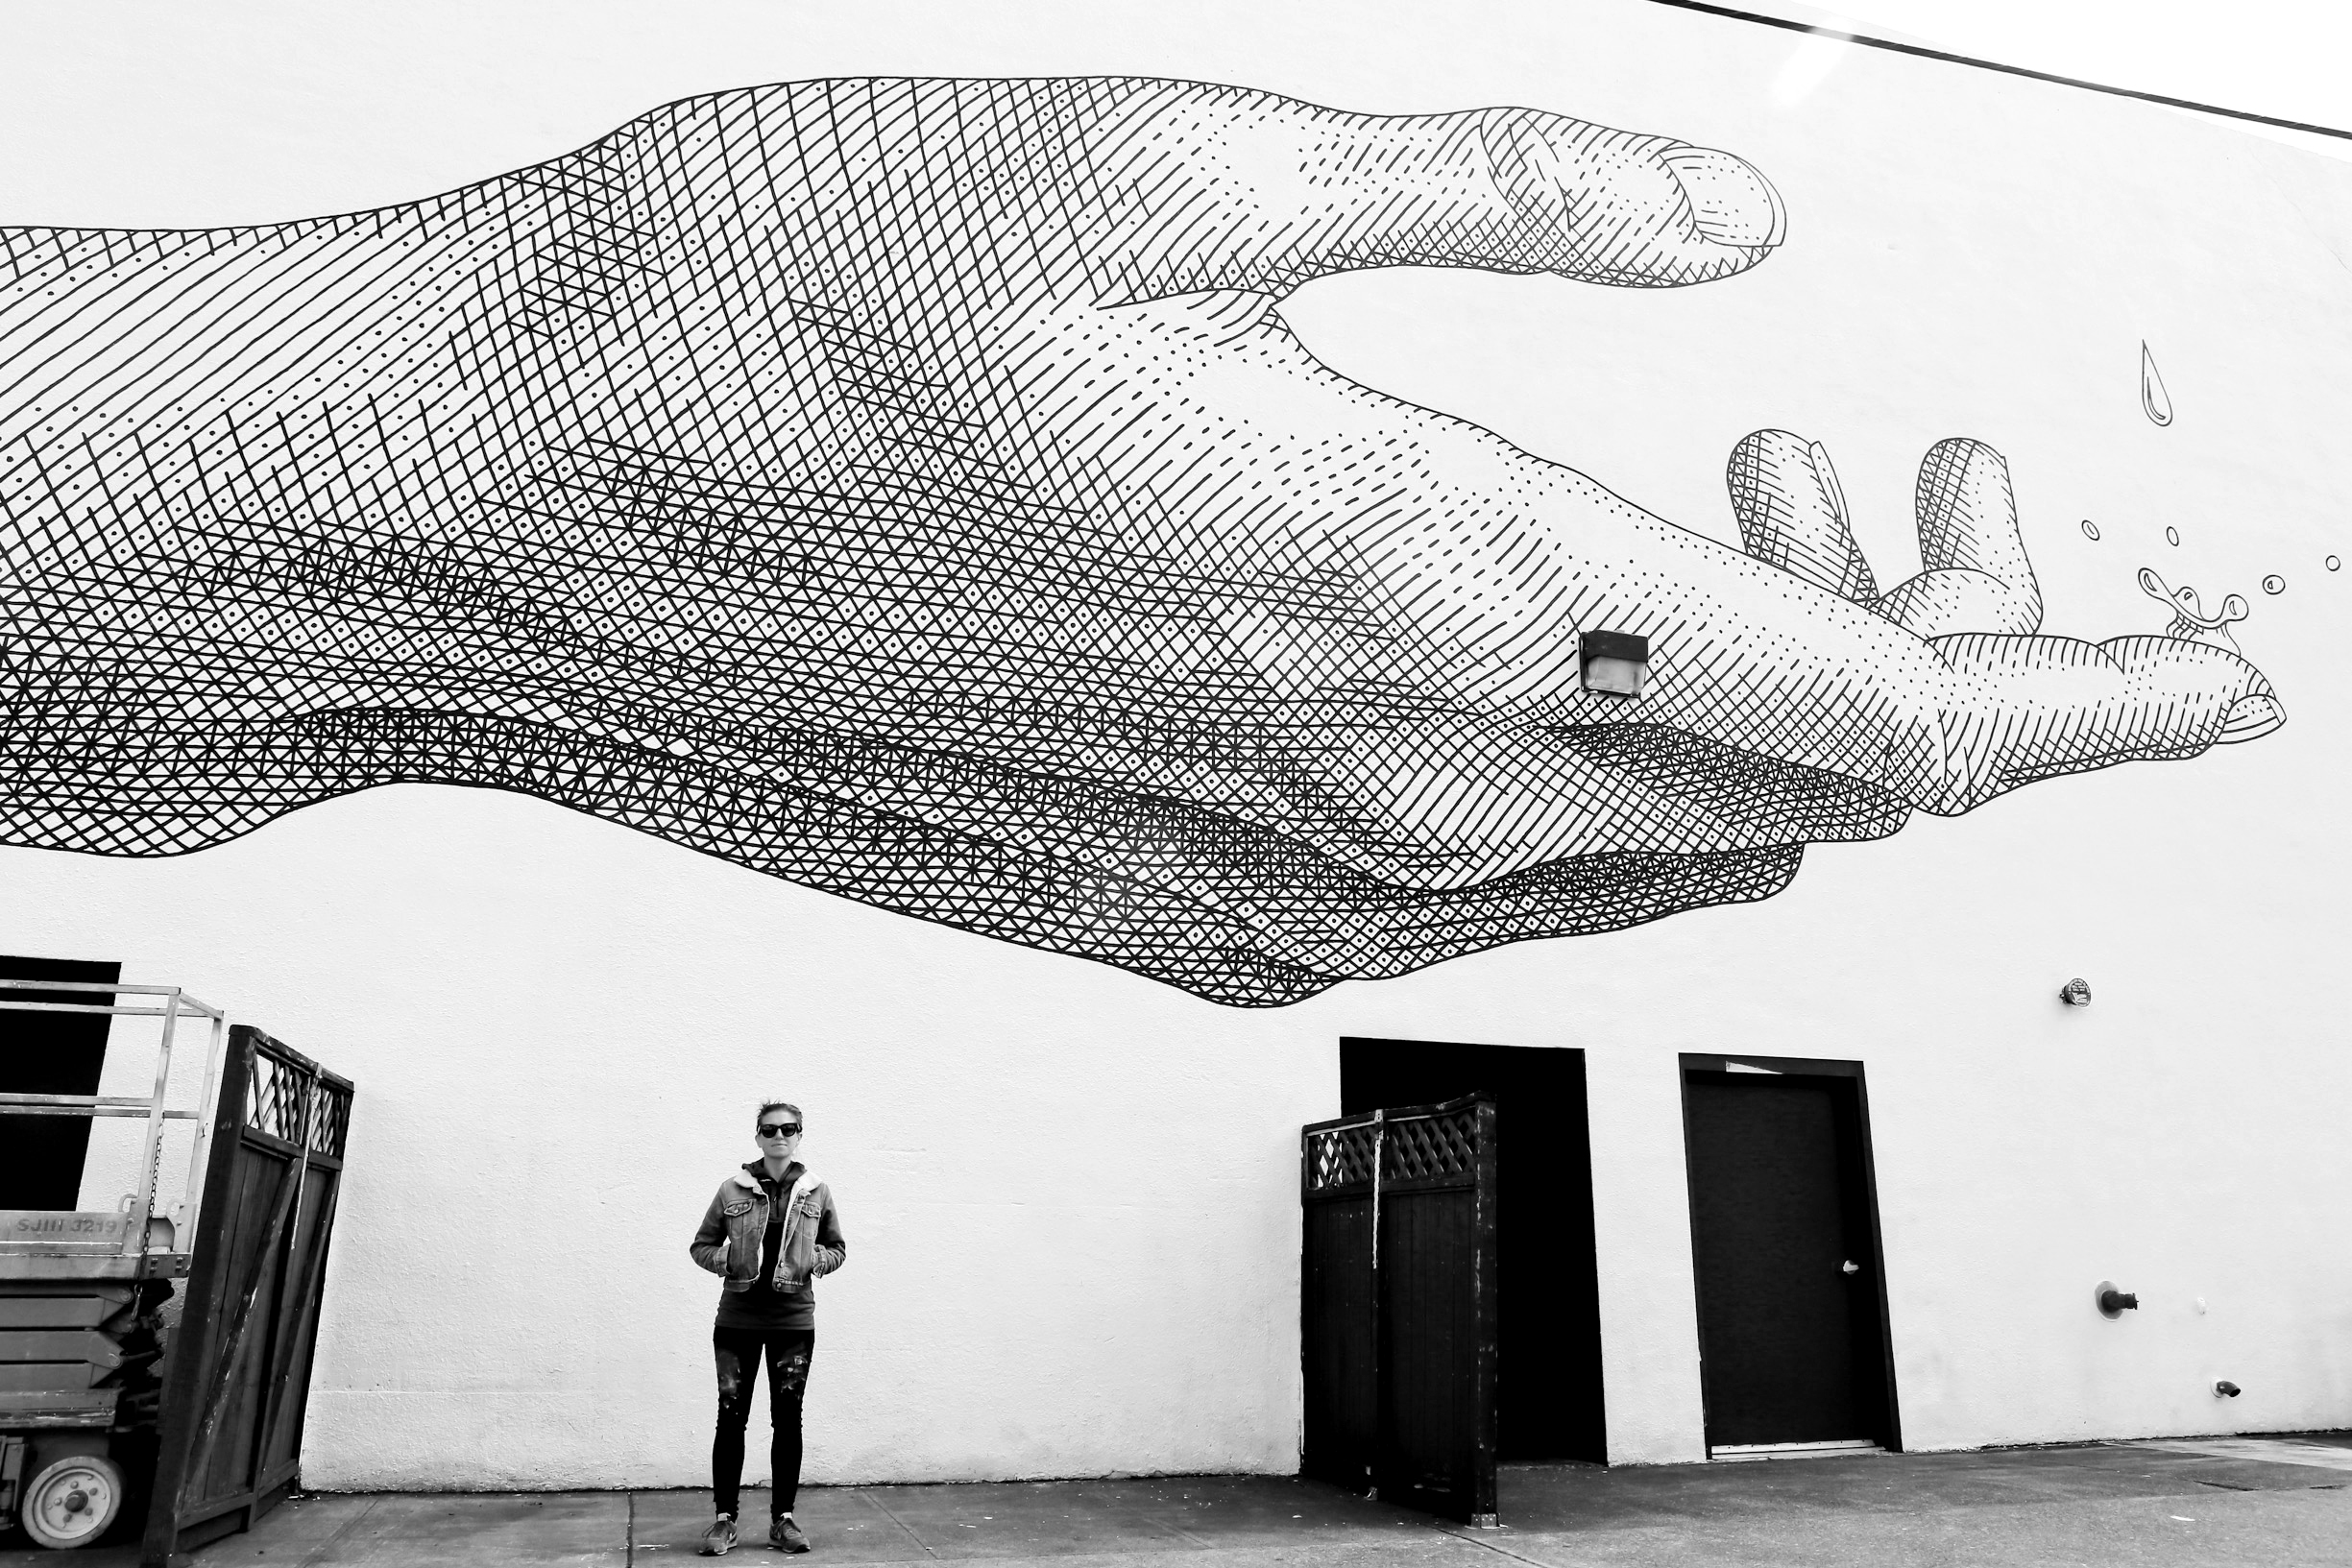 Other Hand, Mural